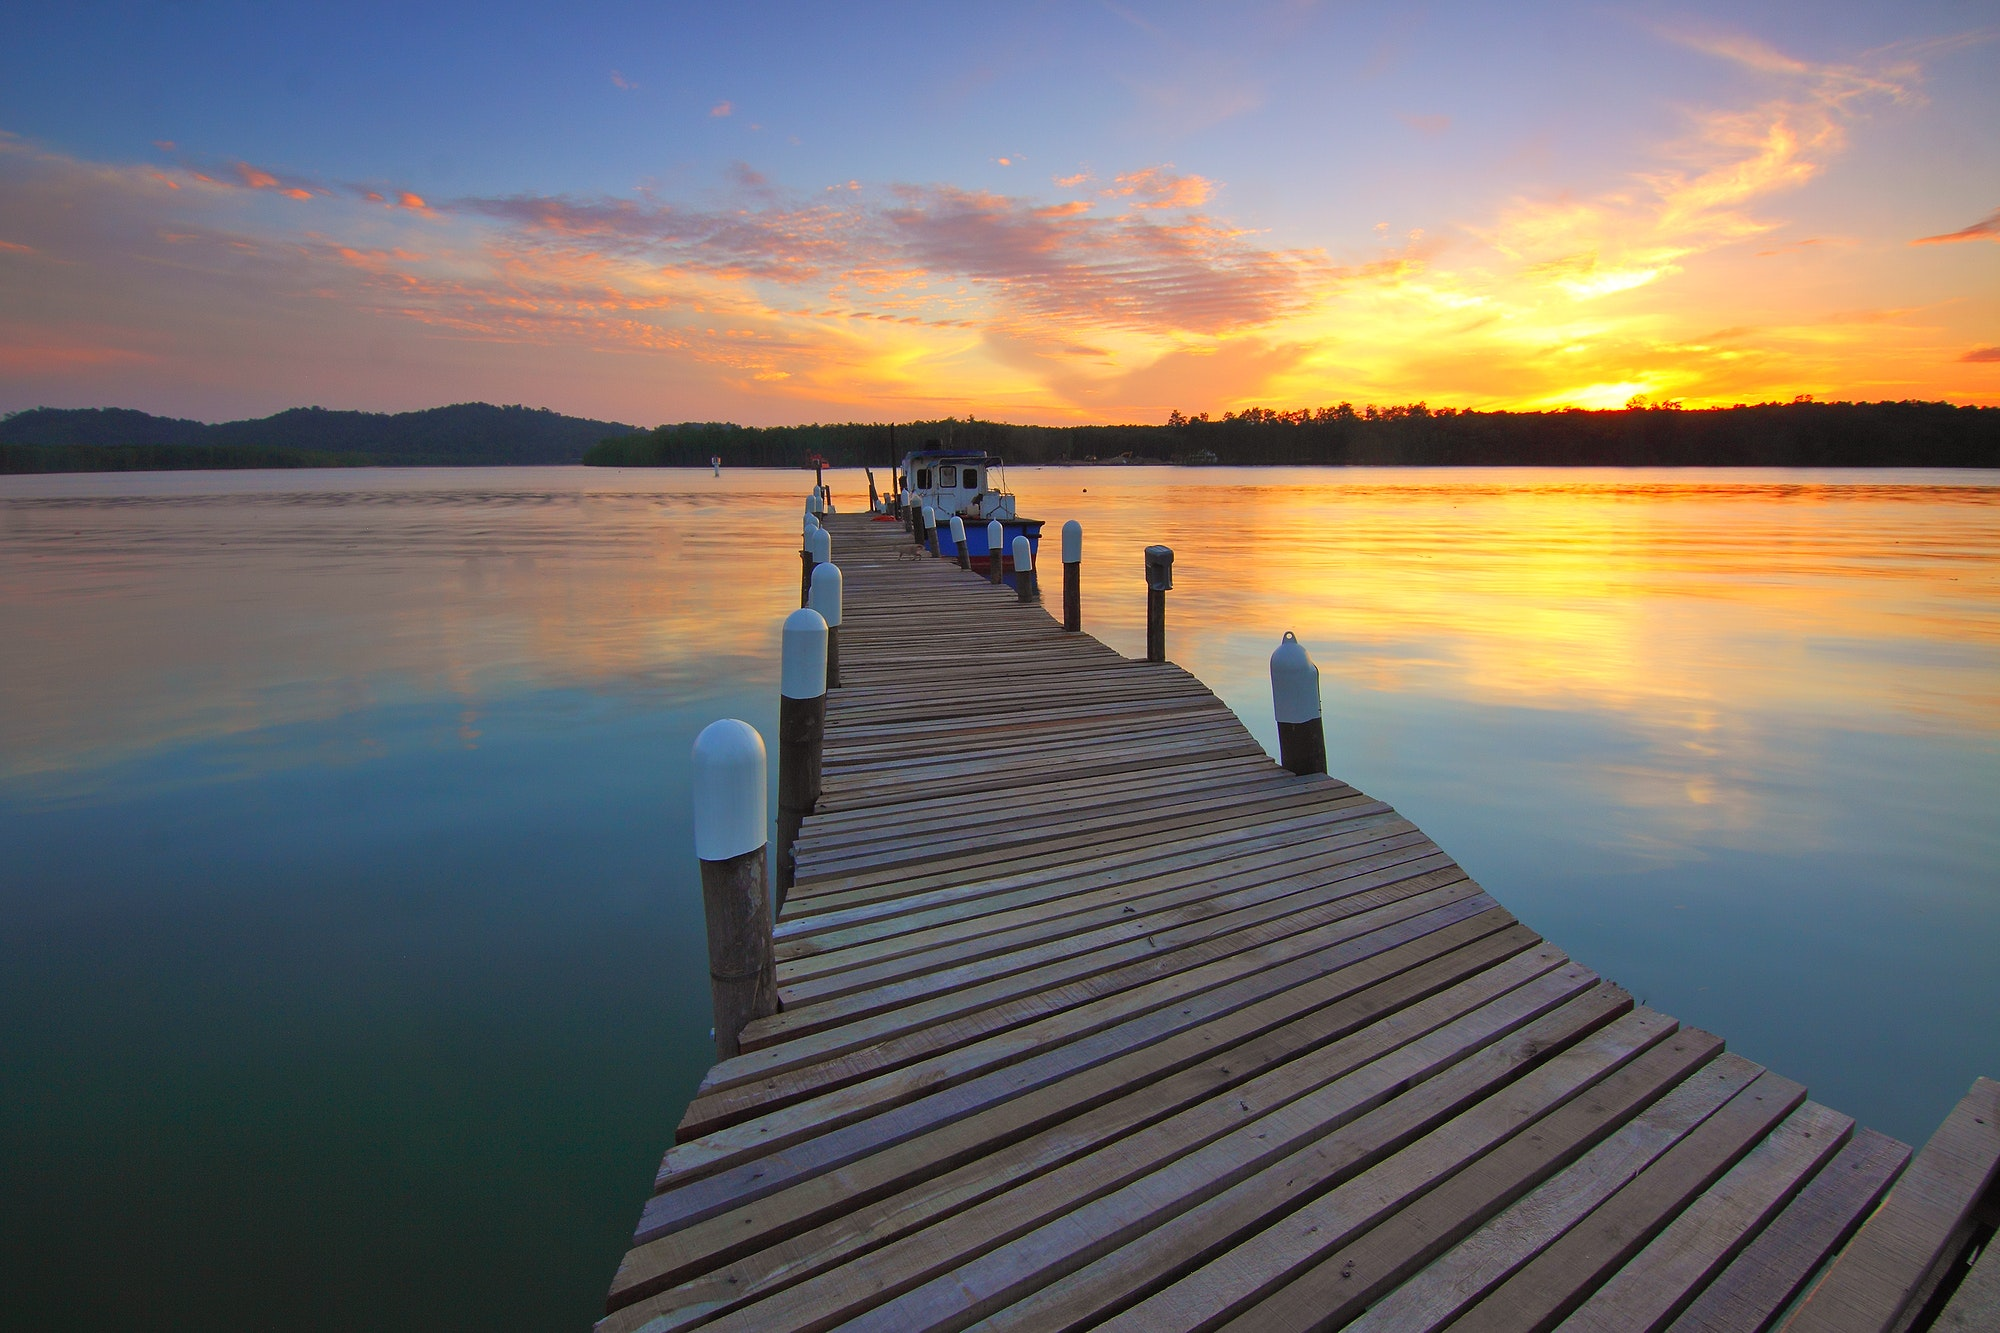 Wooden Dock at Sunset View, Boat, Dawn, Dock, Dusk, HQ Photo